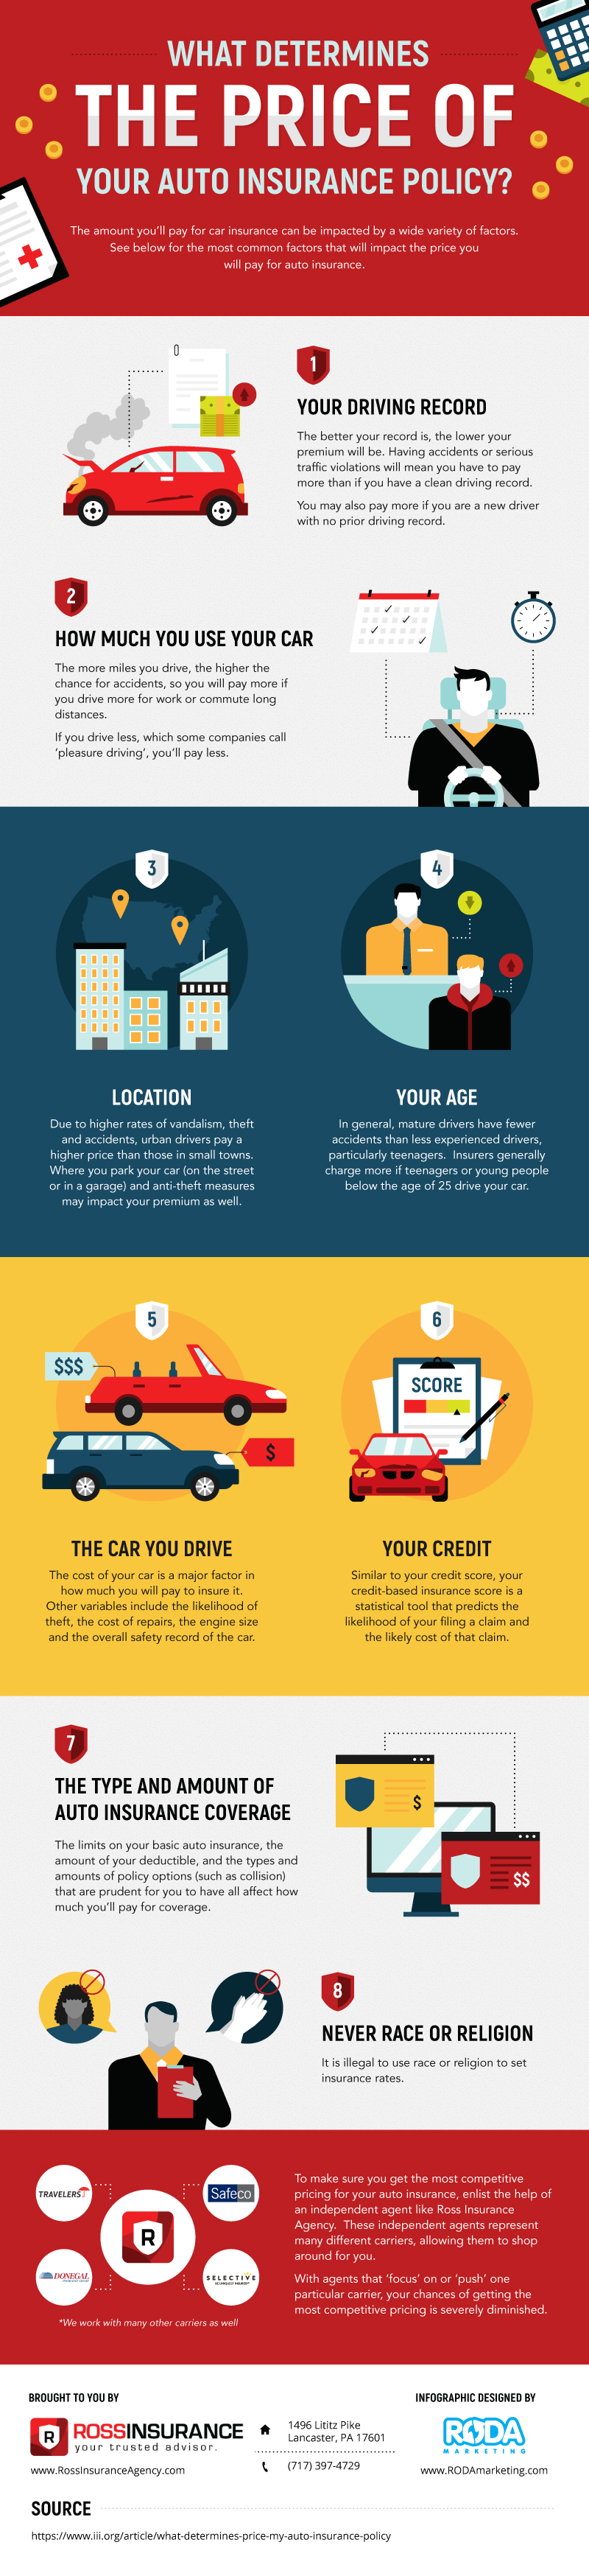 RossInsuranceAgency.com_Infographic_August2019